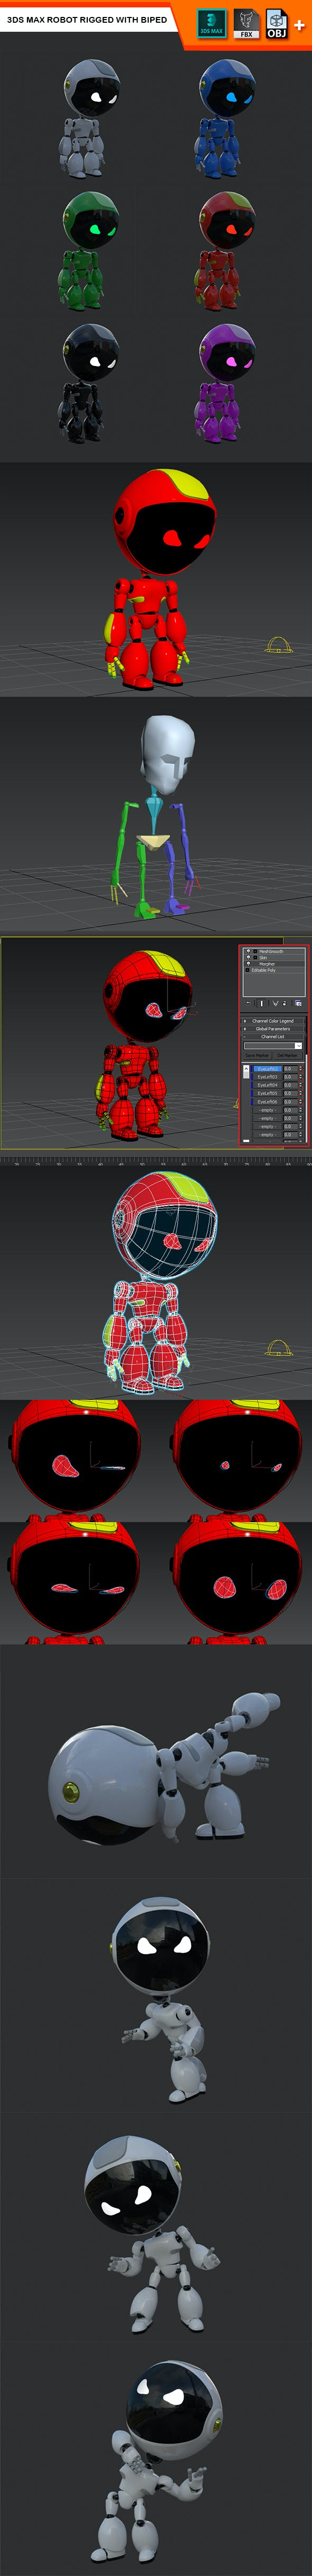 3Ds Max Robot Rigged with Biped - 3DOcean Item for Sale